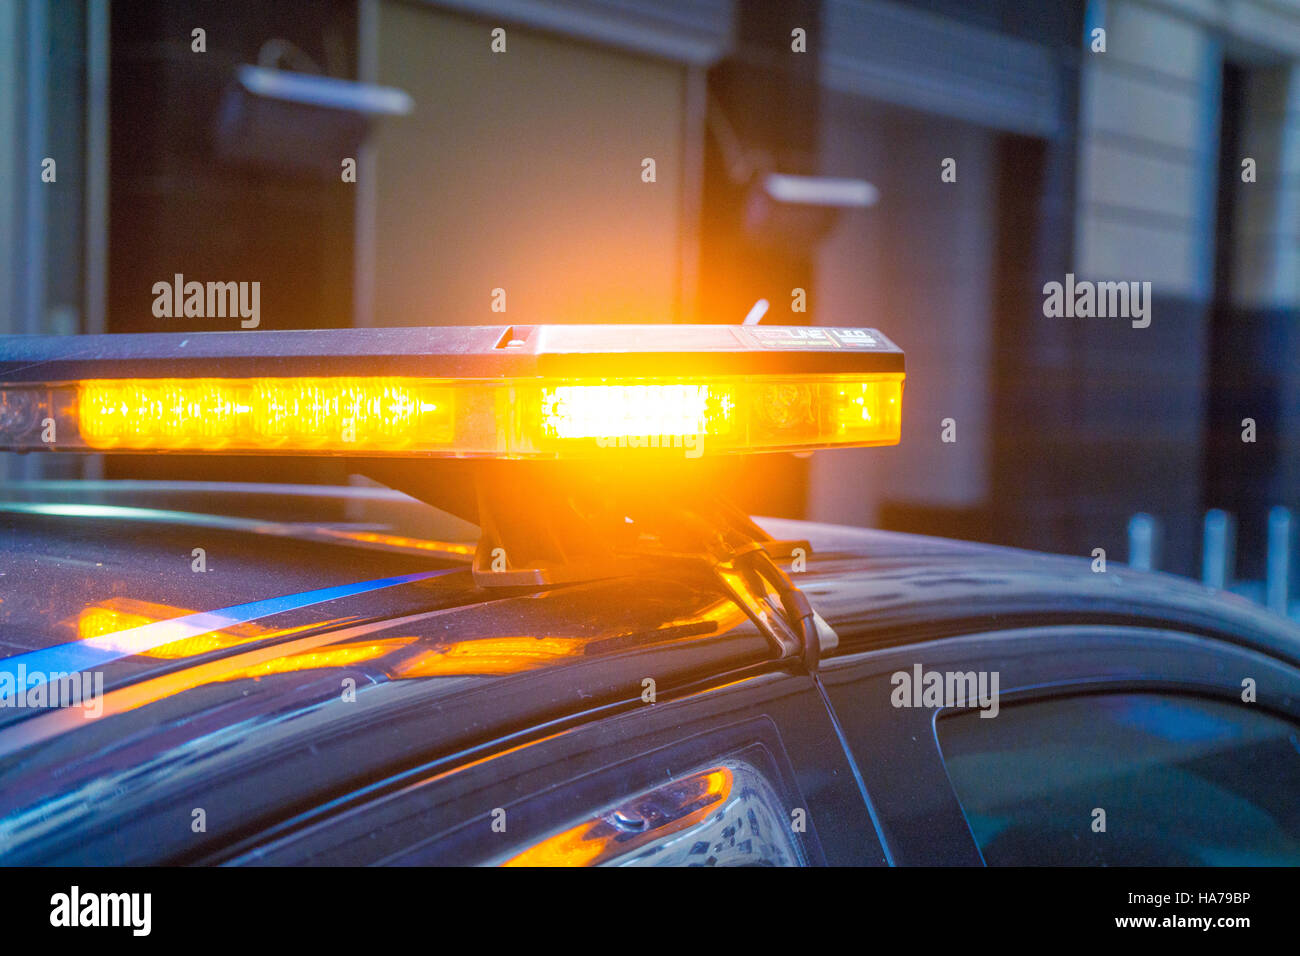 Flashing Light Stock Photos Images Alamy Lamp Alarm Automatic An Amber On Emergency Response Car Image